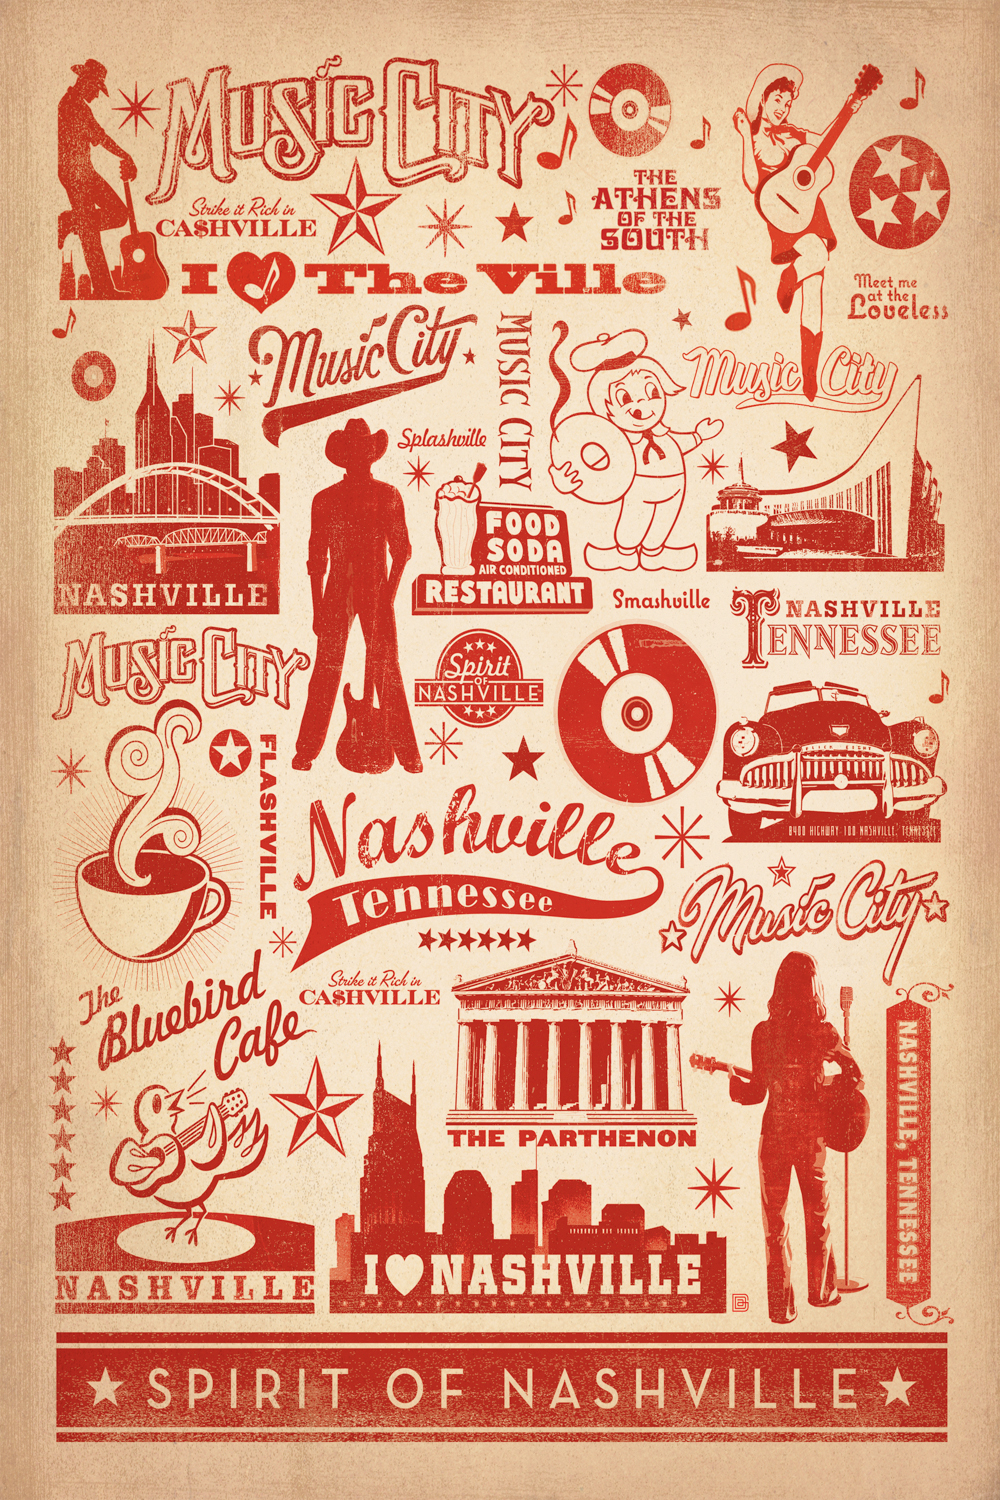 Graphic of Nashville-related music icons and symbols in red on a beige background